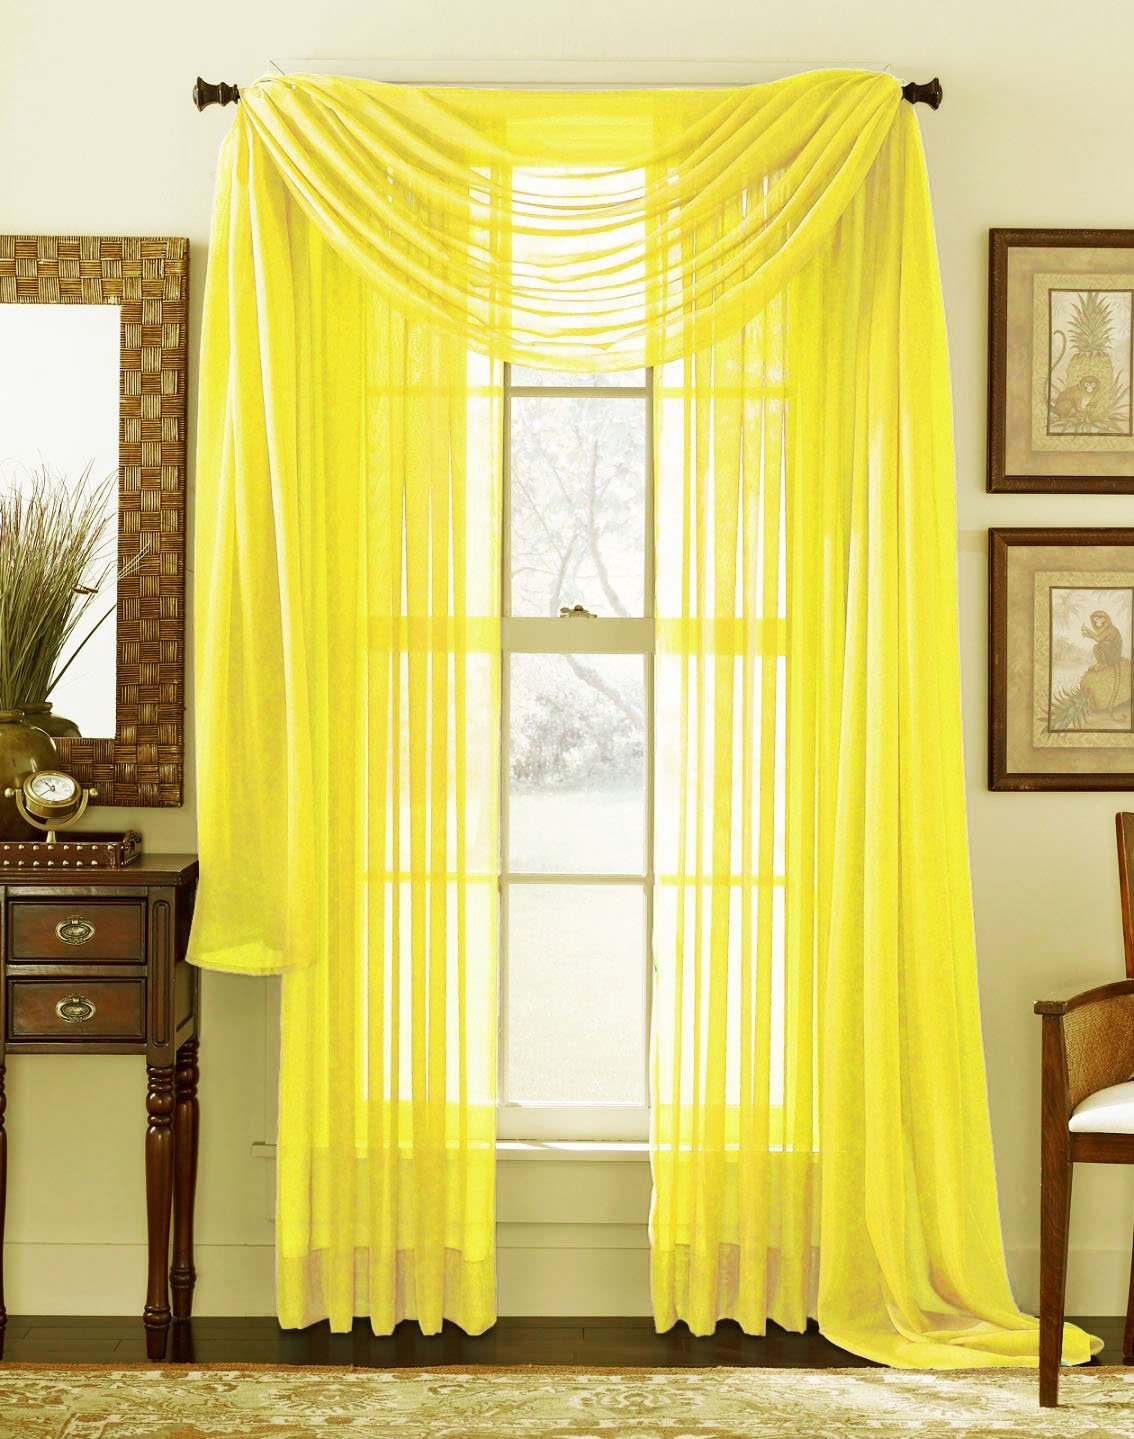 curtains/Drape/Panels/Treatment Yellow